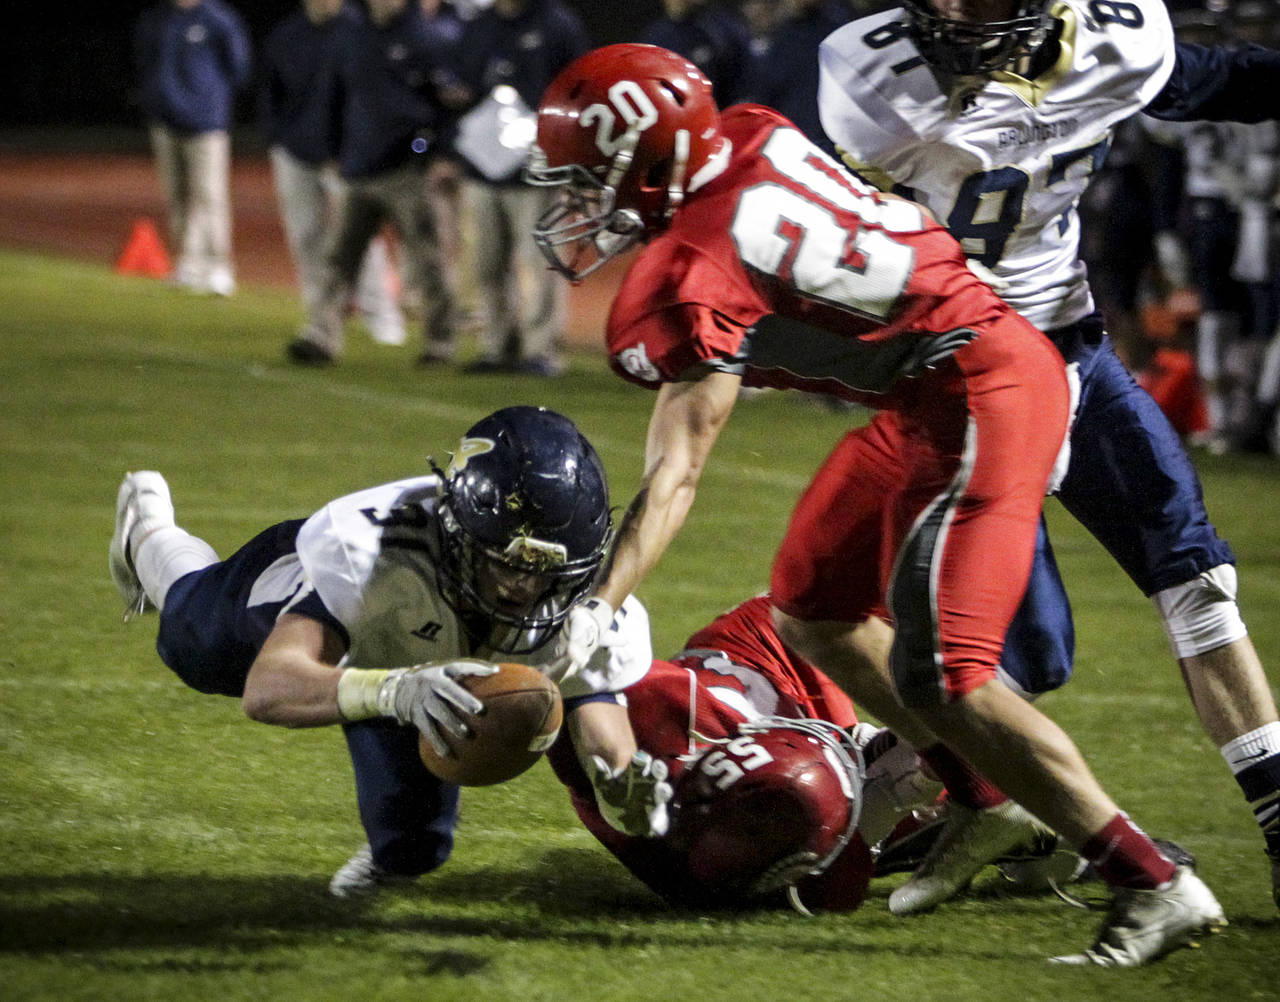 Arlington's Payton Bastien (left) dives forward as Stanwood's Kaiser Hezel defends during the annual Stilly Cup game at Stanwood High School on Oct. 13, 2017. (Ian Terry / The Herald)